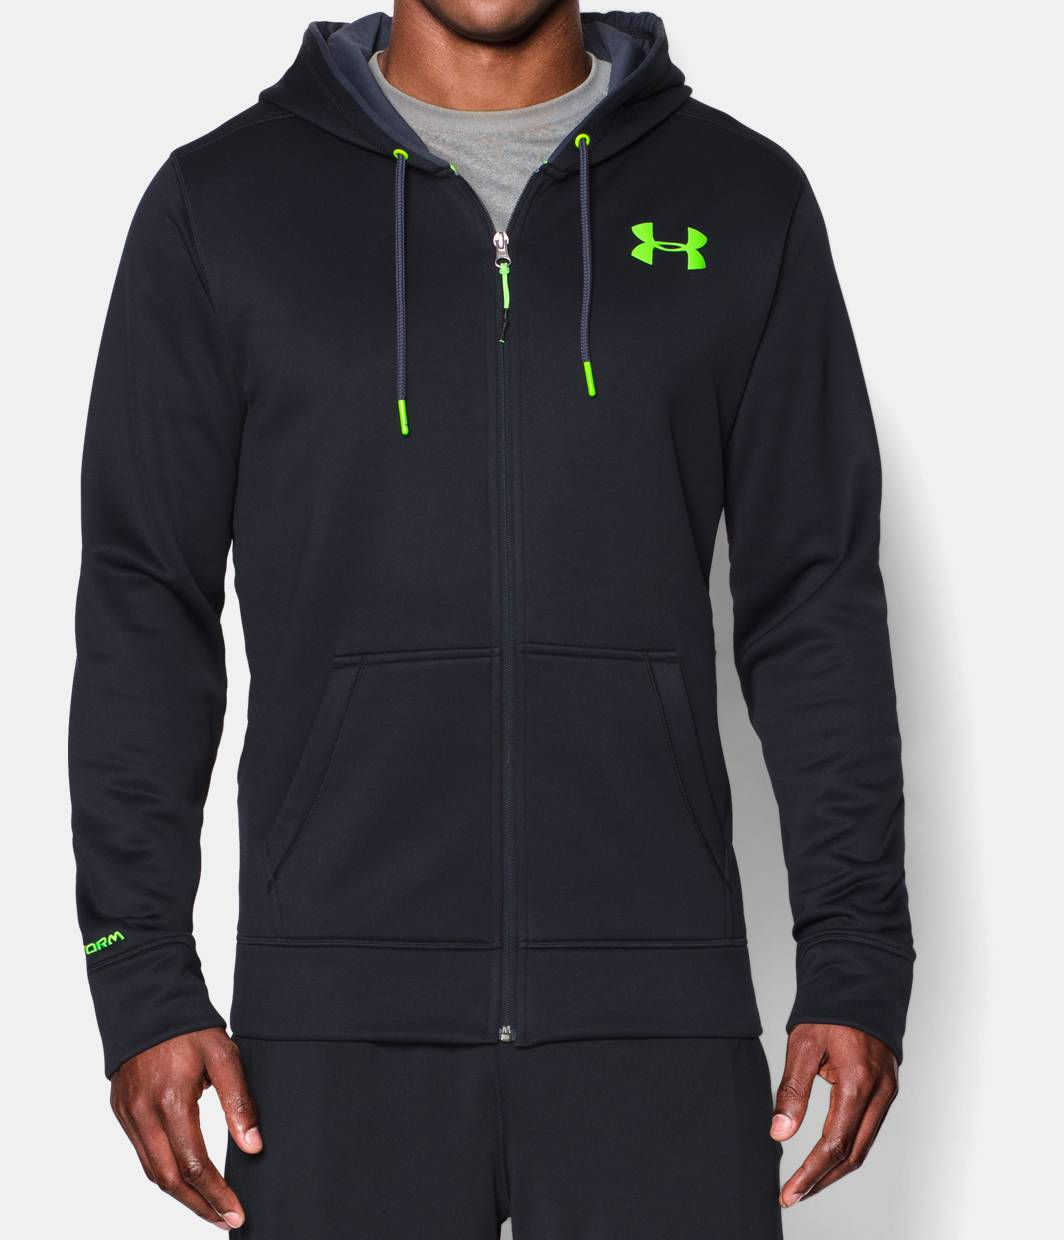 Storm under armour hoodie